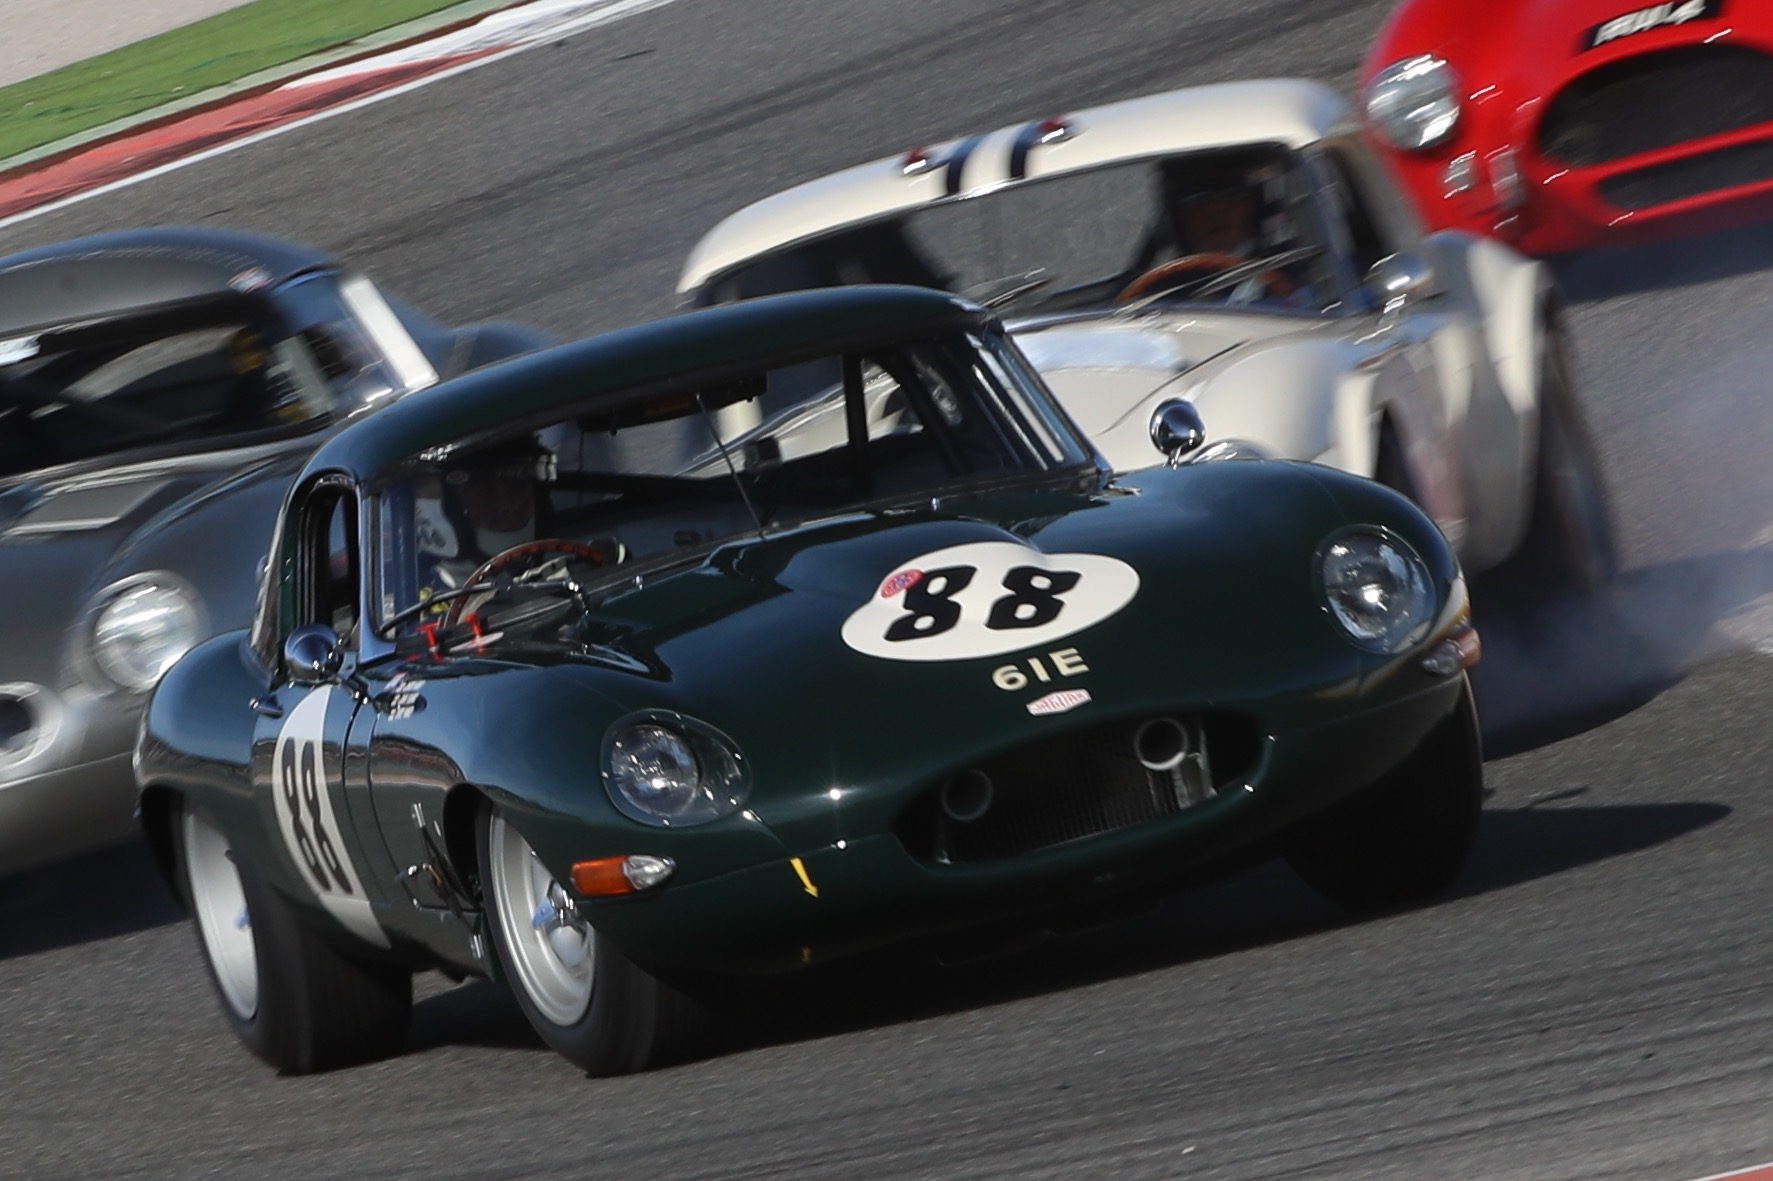 The JD Classics Jaguar E-Type fended off fierce competition to claim a well-deserved victory in the GT & Sports Car Cup race.